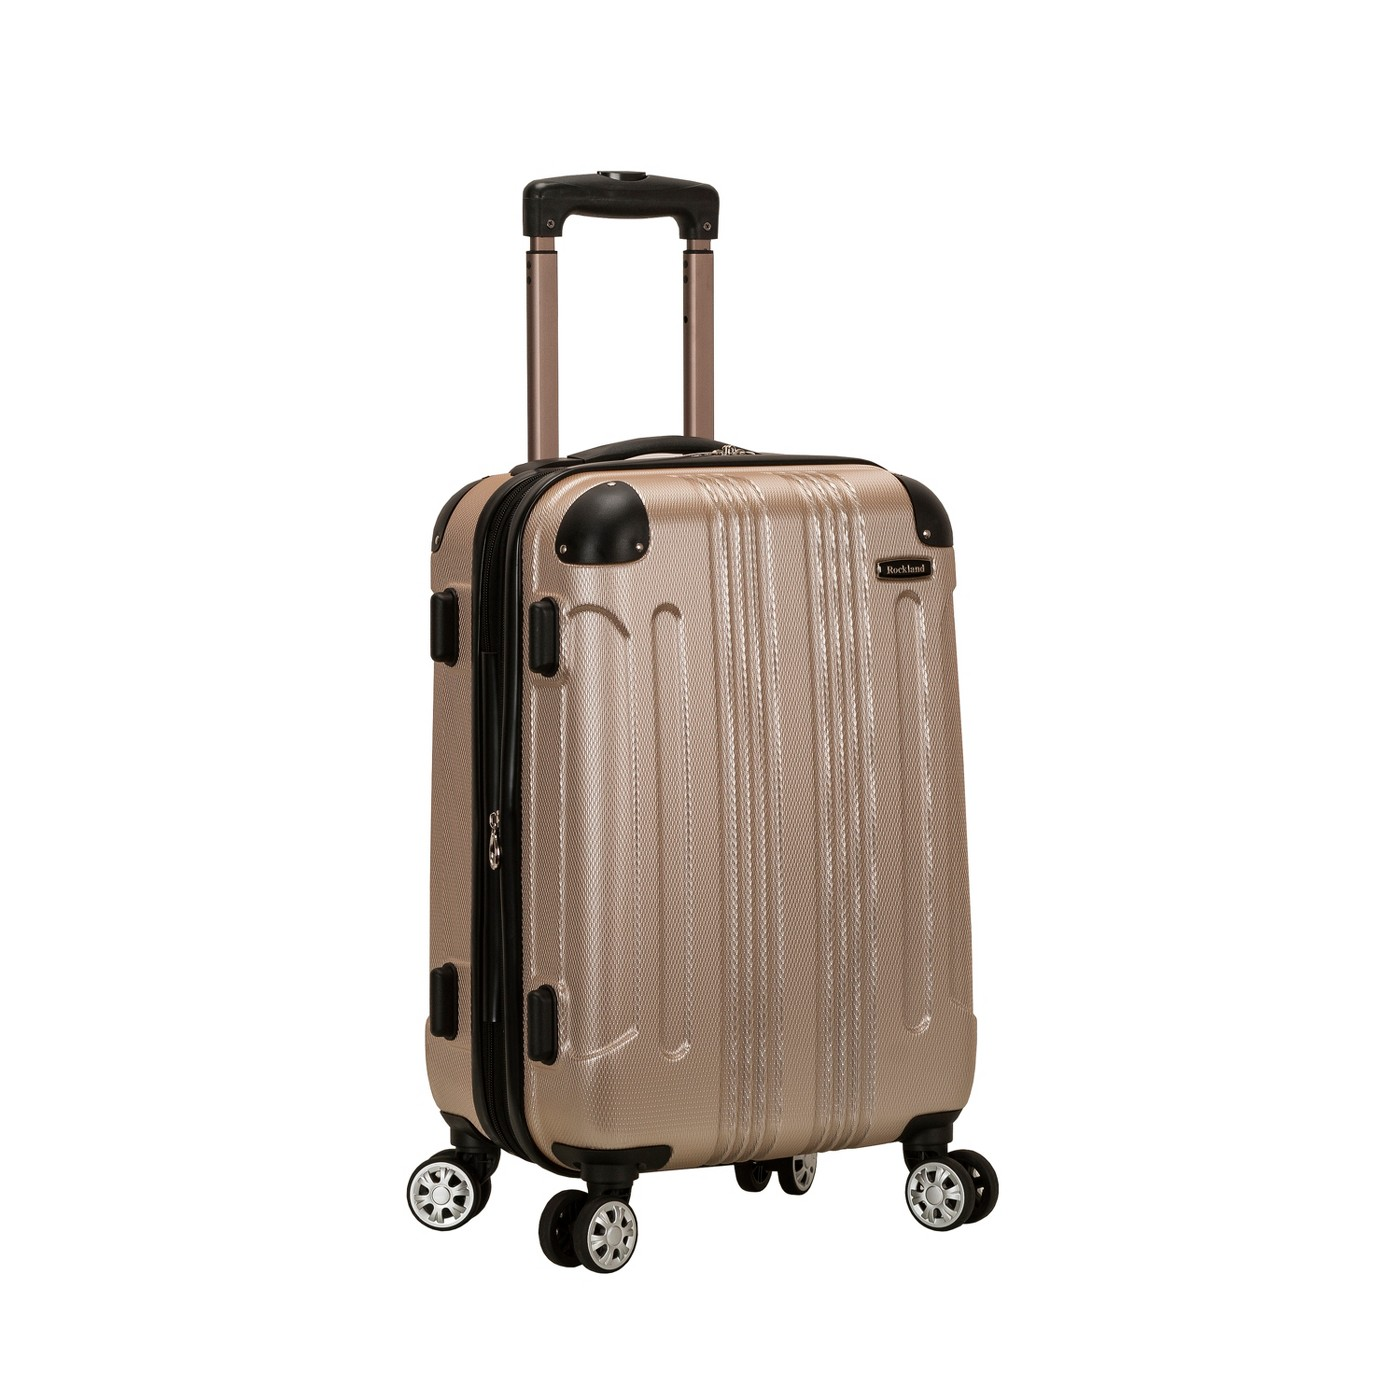 "Rockland Sonic 20"" Expandable Hardside Carry On Suitcase - Champagne - image 1 of 5"